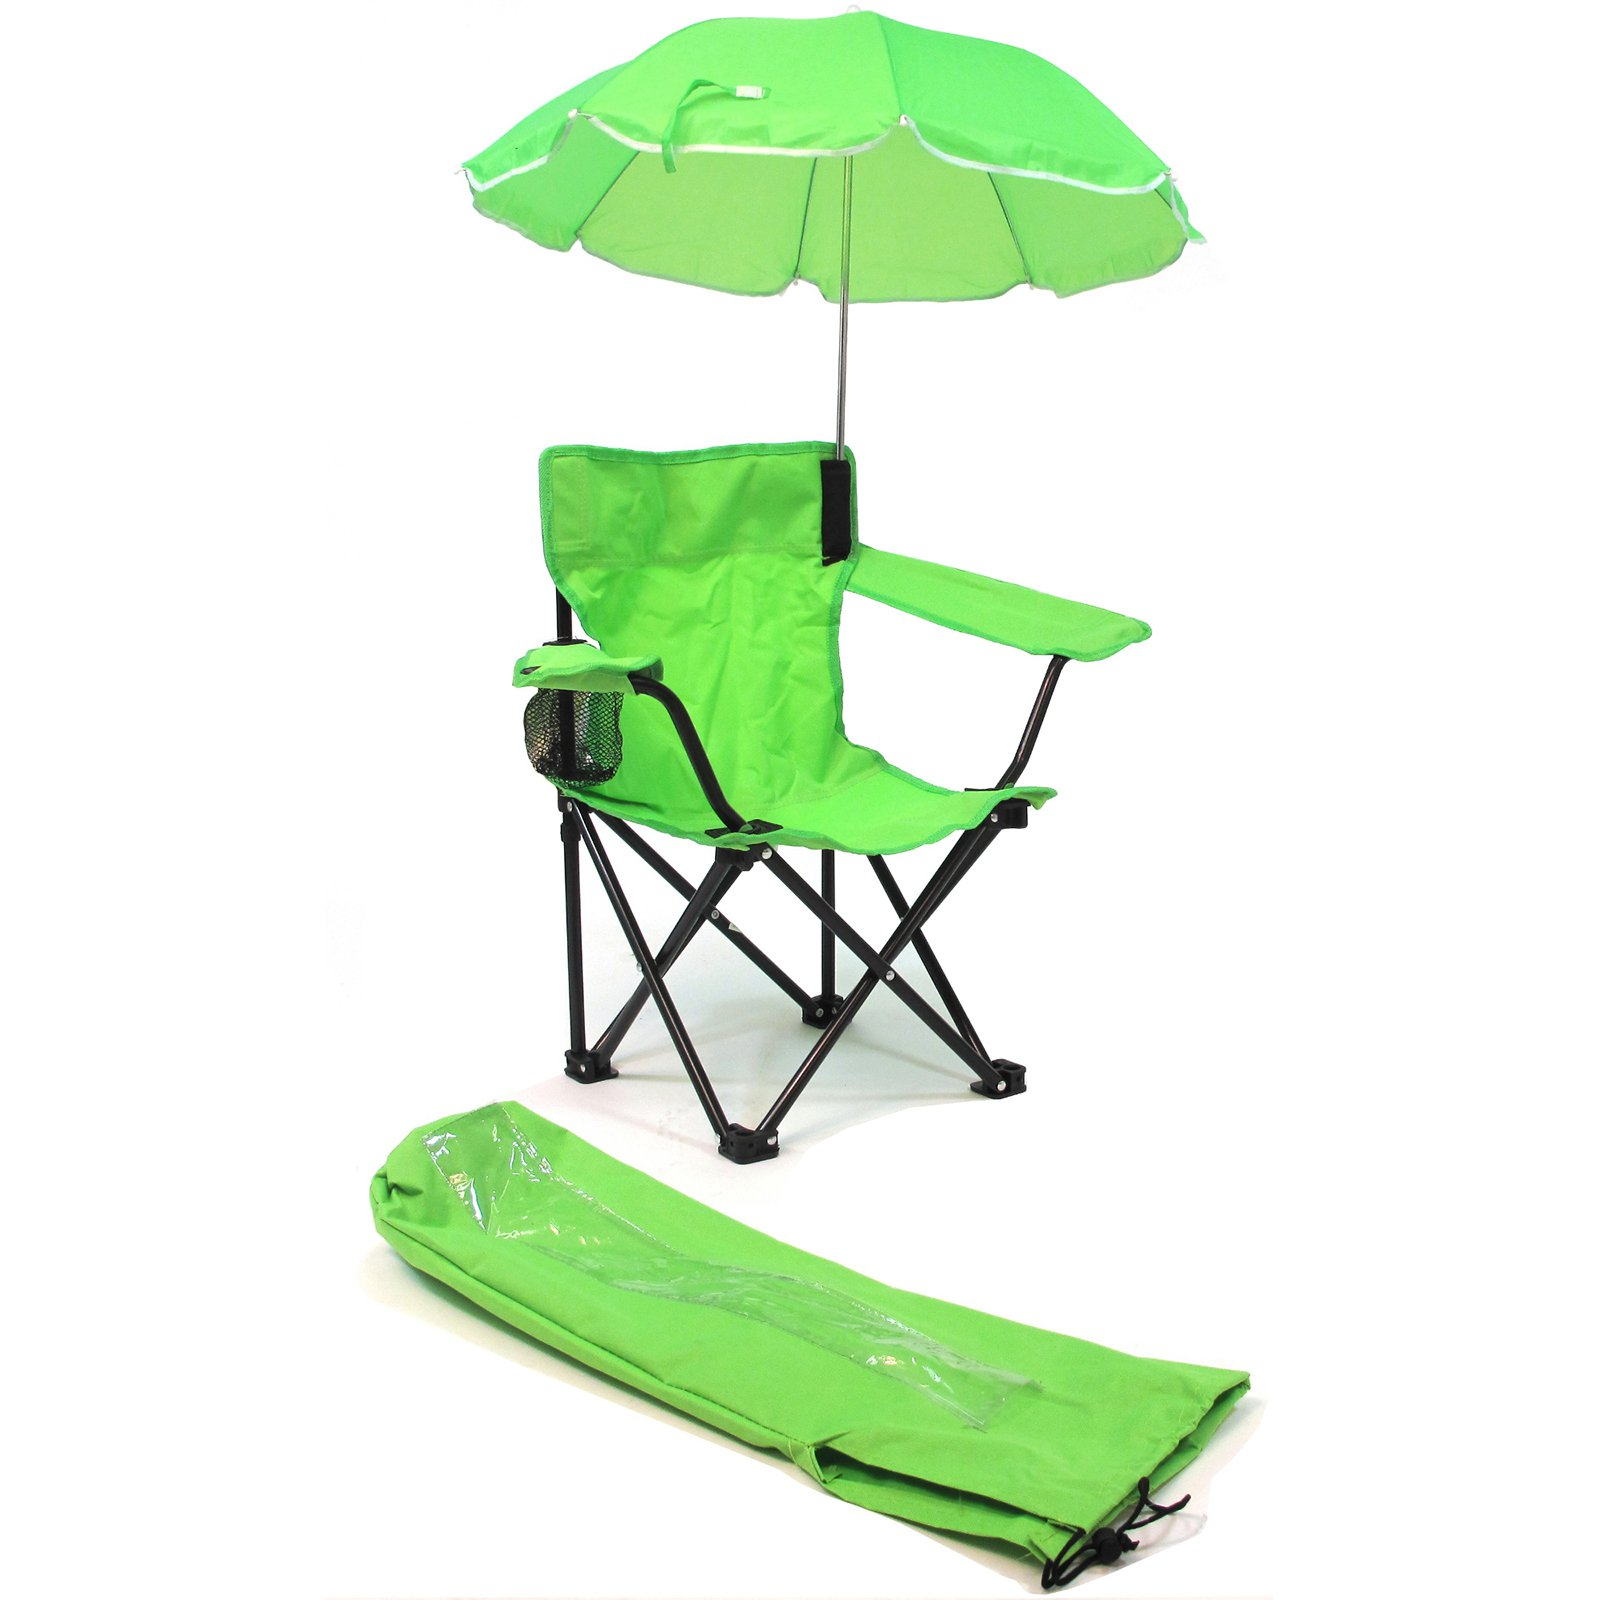 Camping chairs with umbrella - Camping Chairs With Umbrella